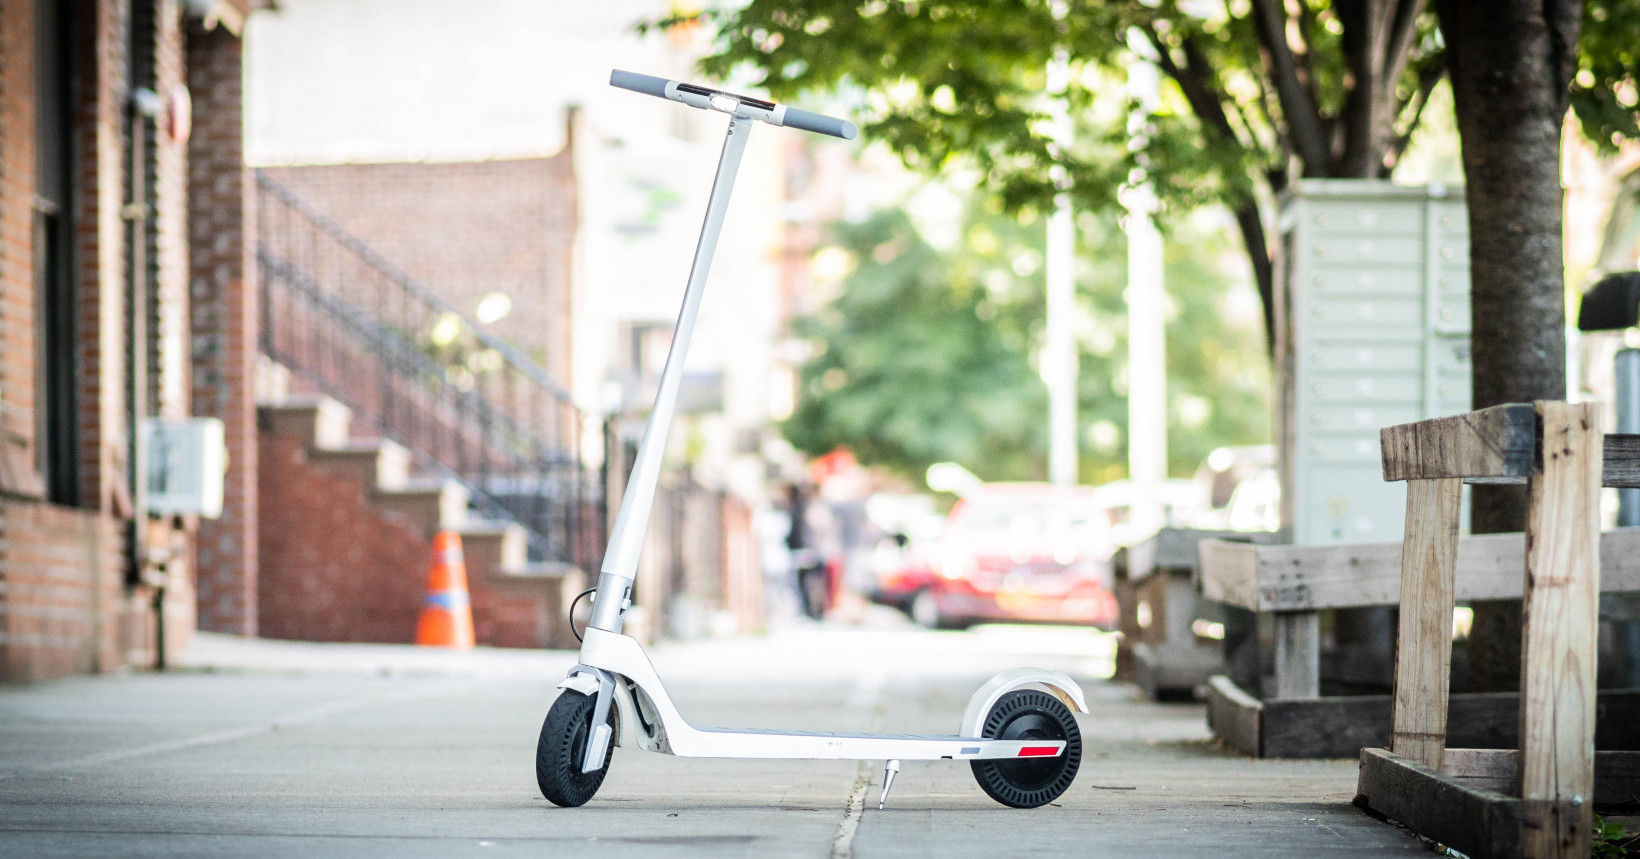 Review: The $990 Unagi e-scooter is sleek, powerful, and light